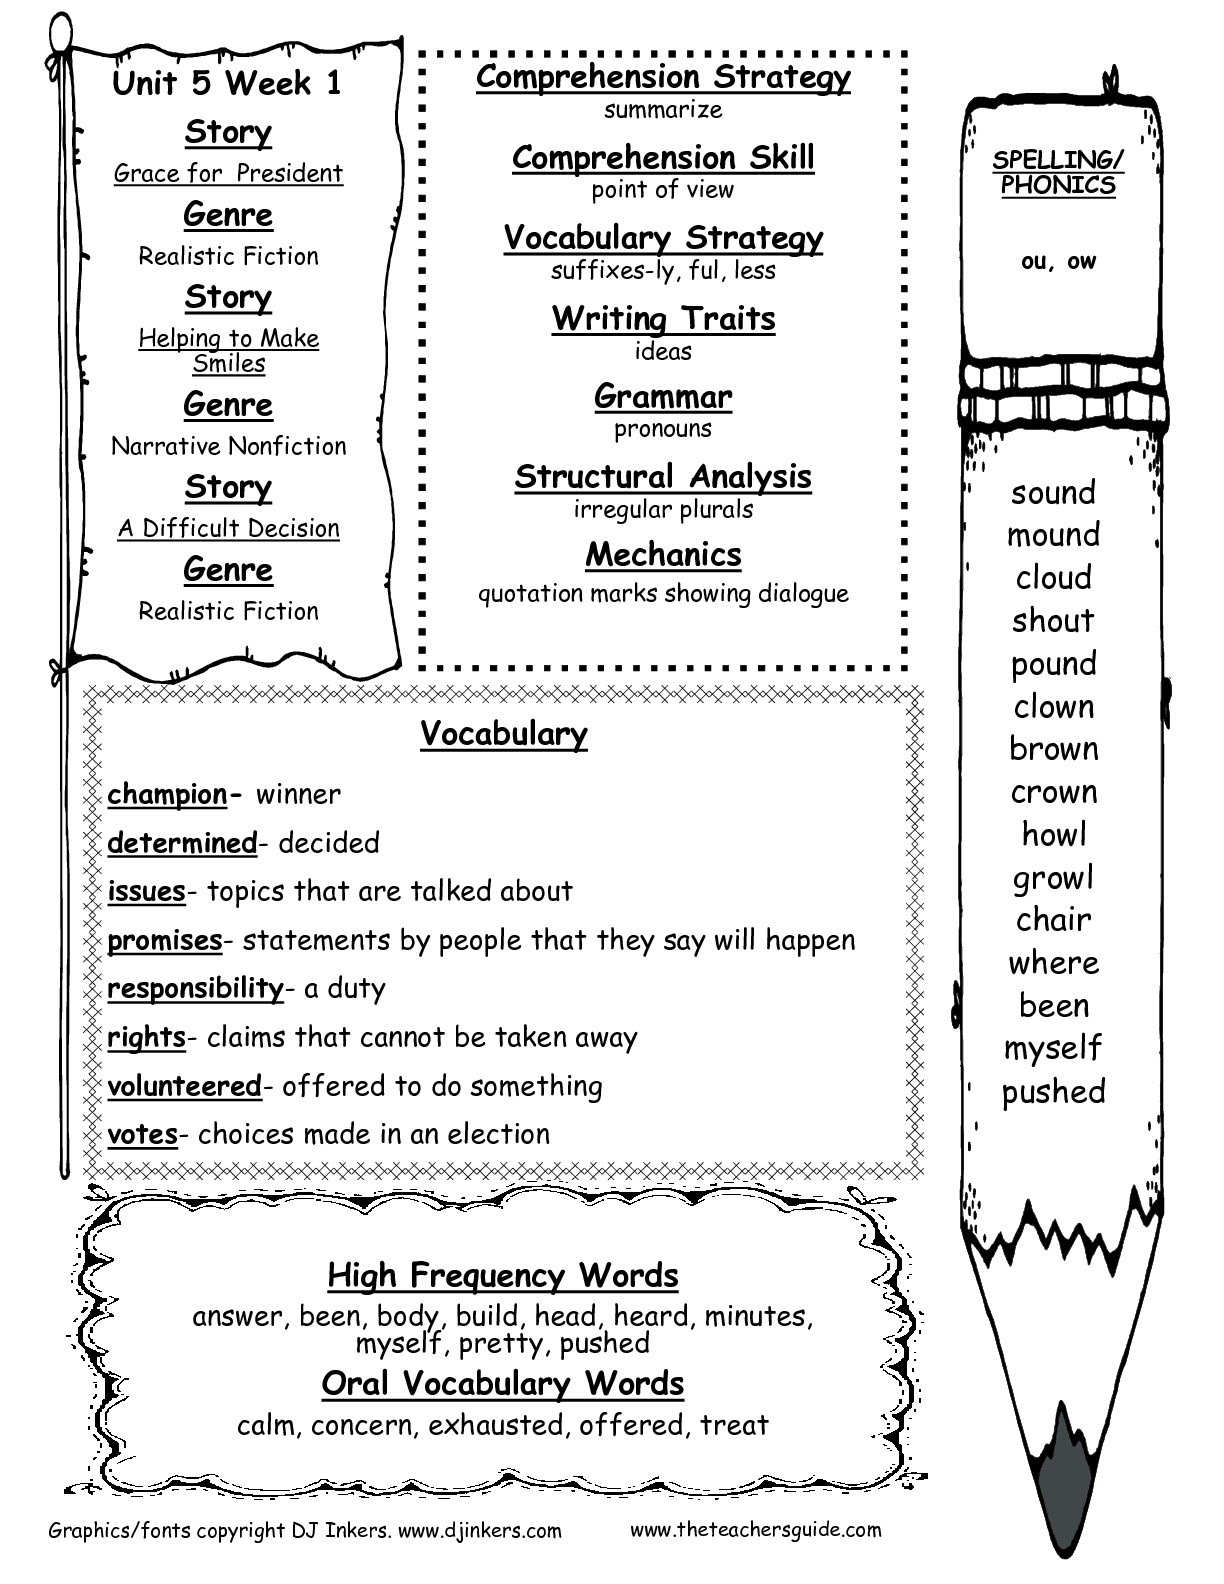 Worksheet Second Grade Vocabulary Words spelling and vocabulary words for the week of march 9 12 2015 mrs ferro philps second graders